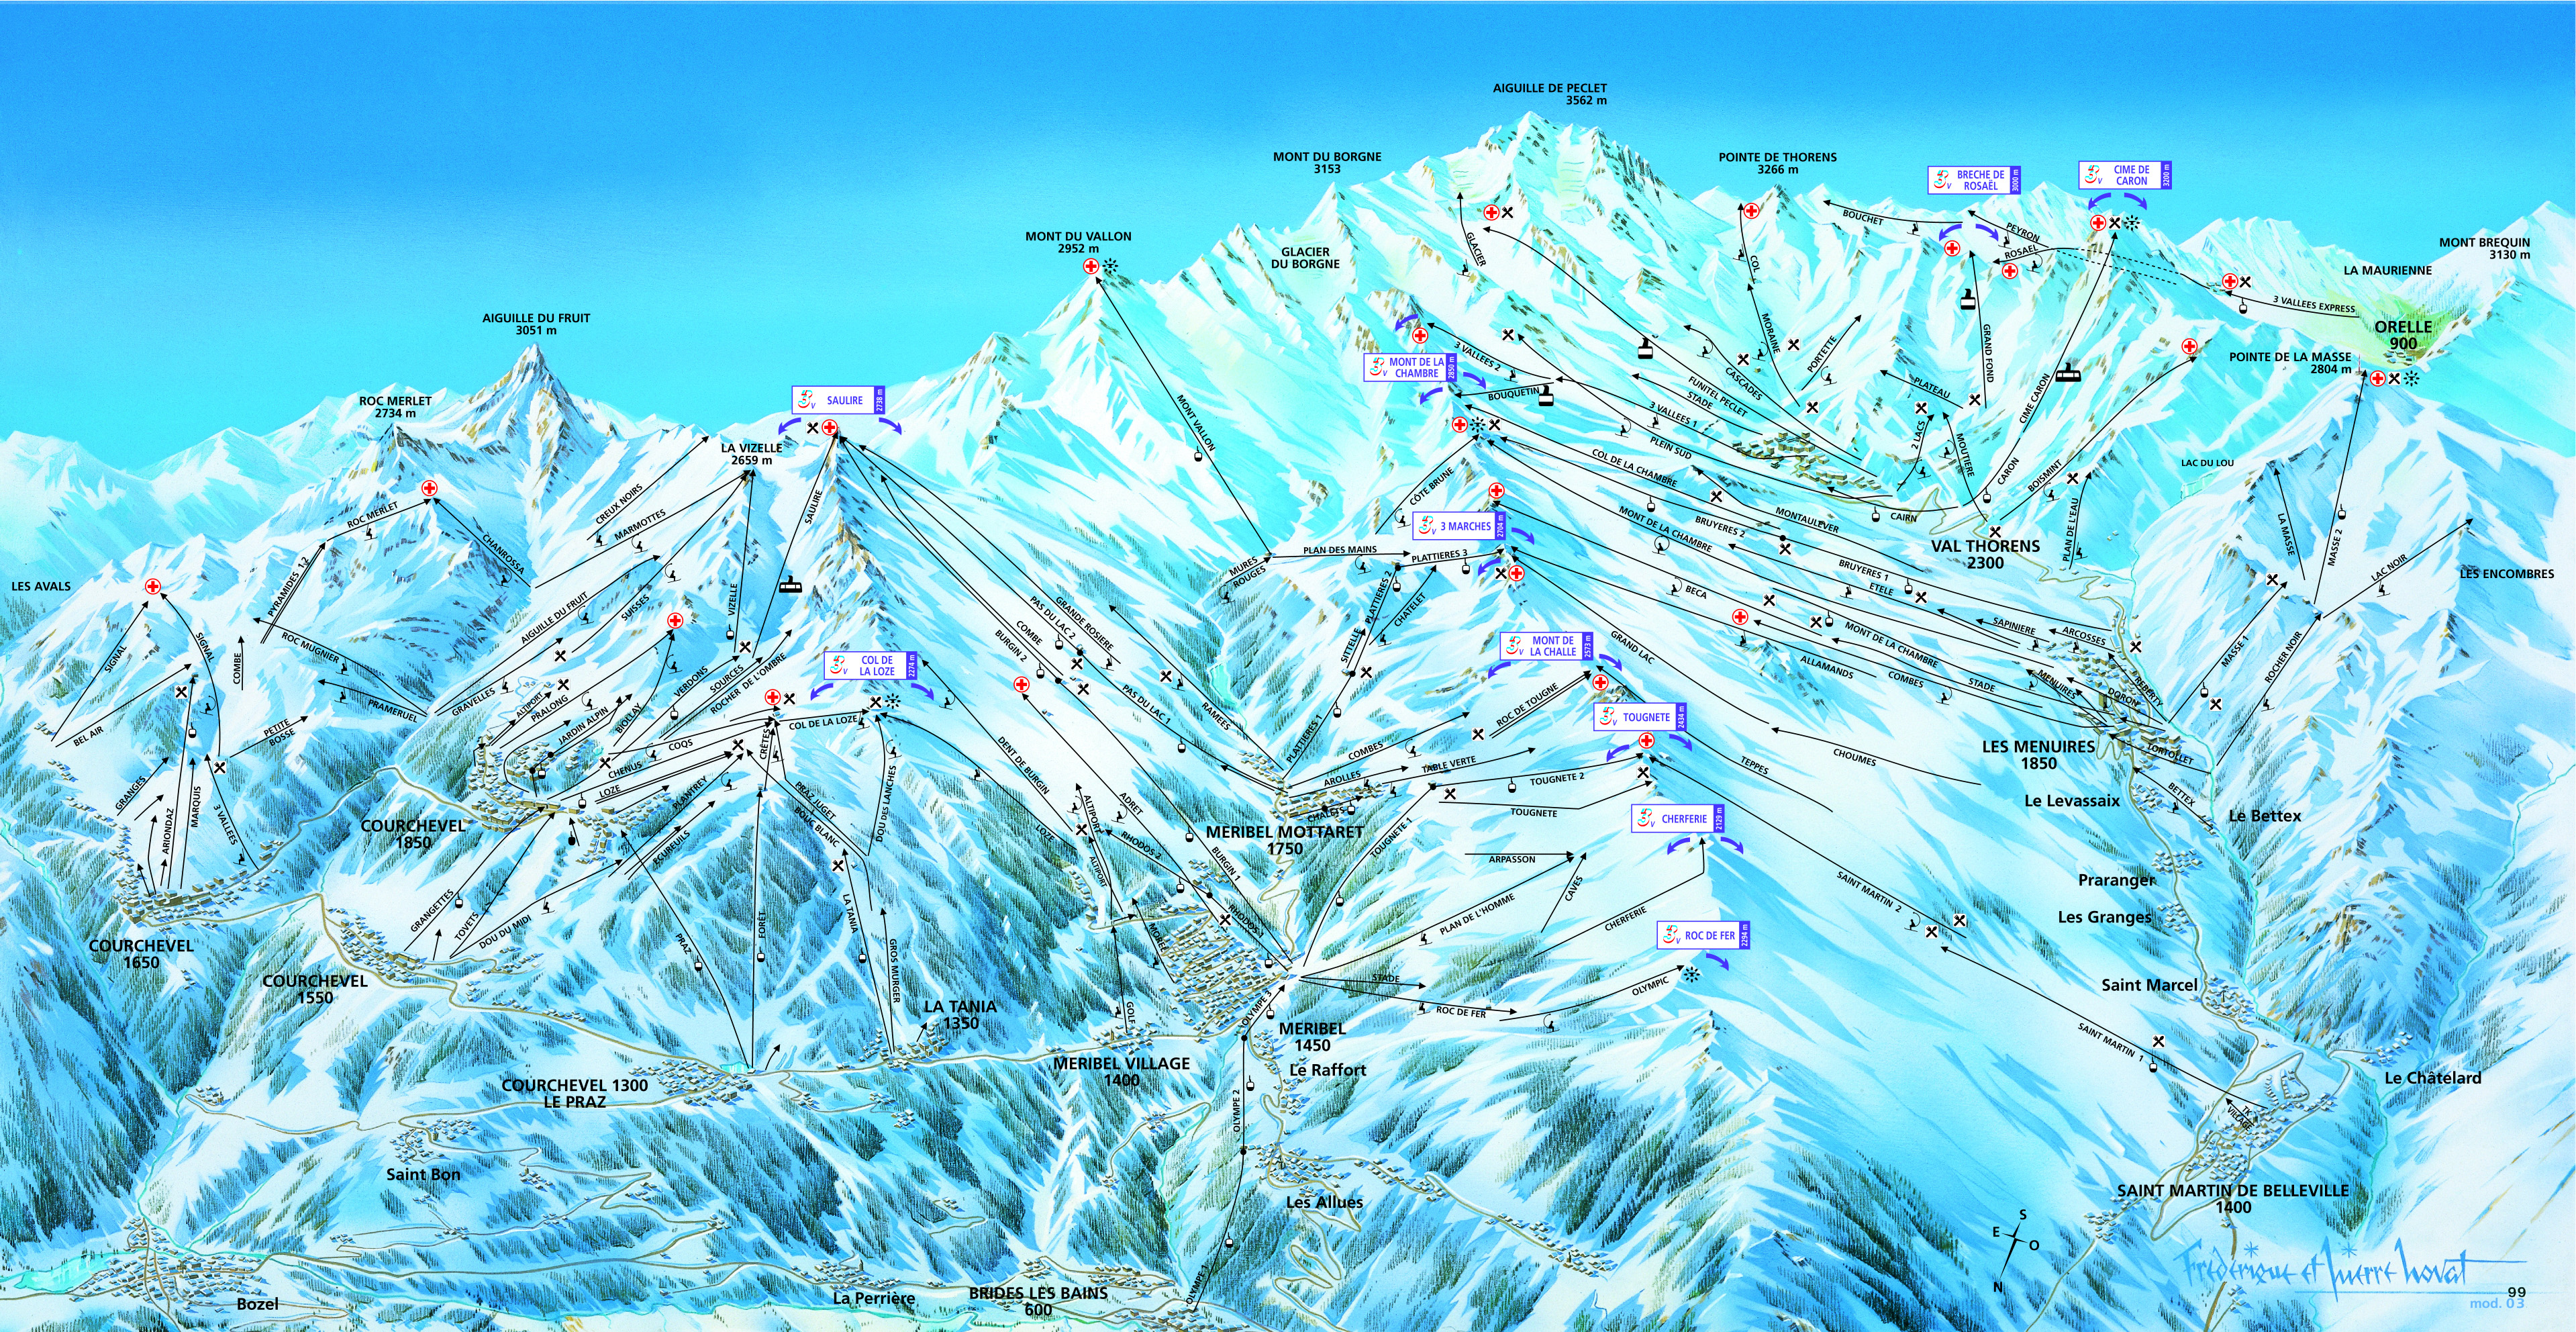 Meribel Piste Map Meribel Piste Maps and Ski Resort Map | PowderBeds Meribel Piste Map